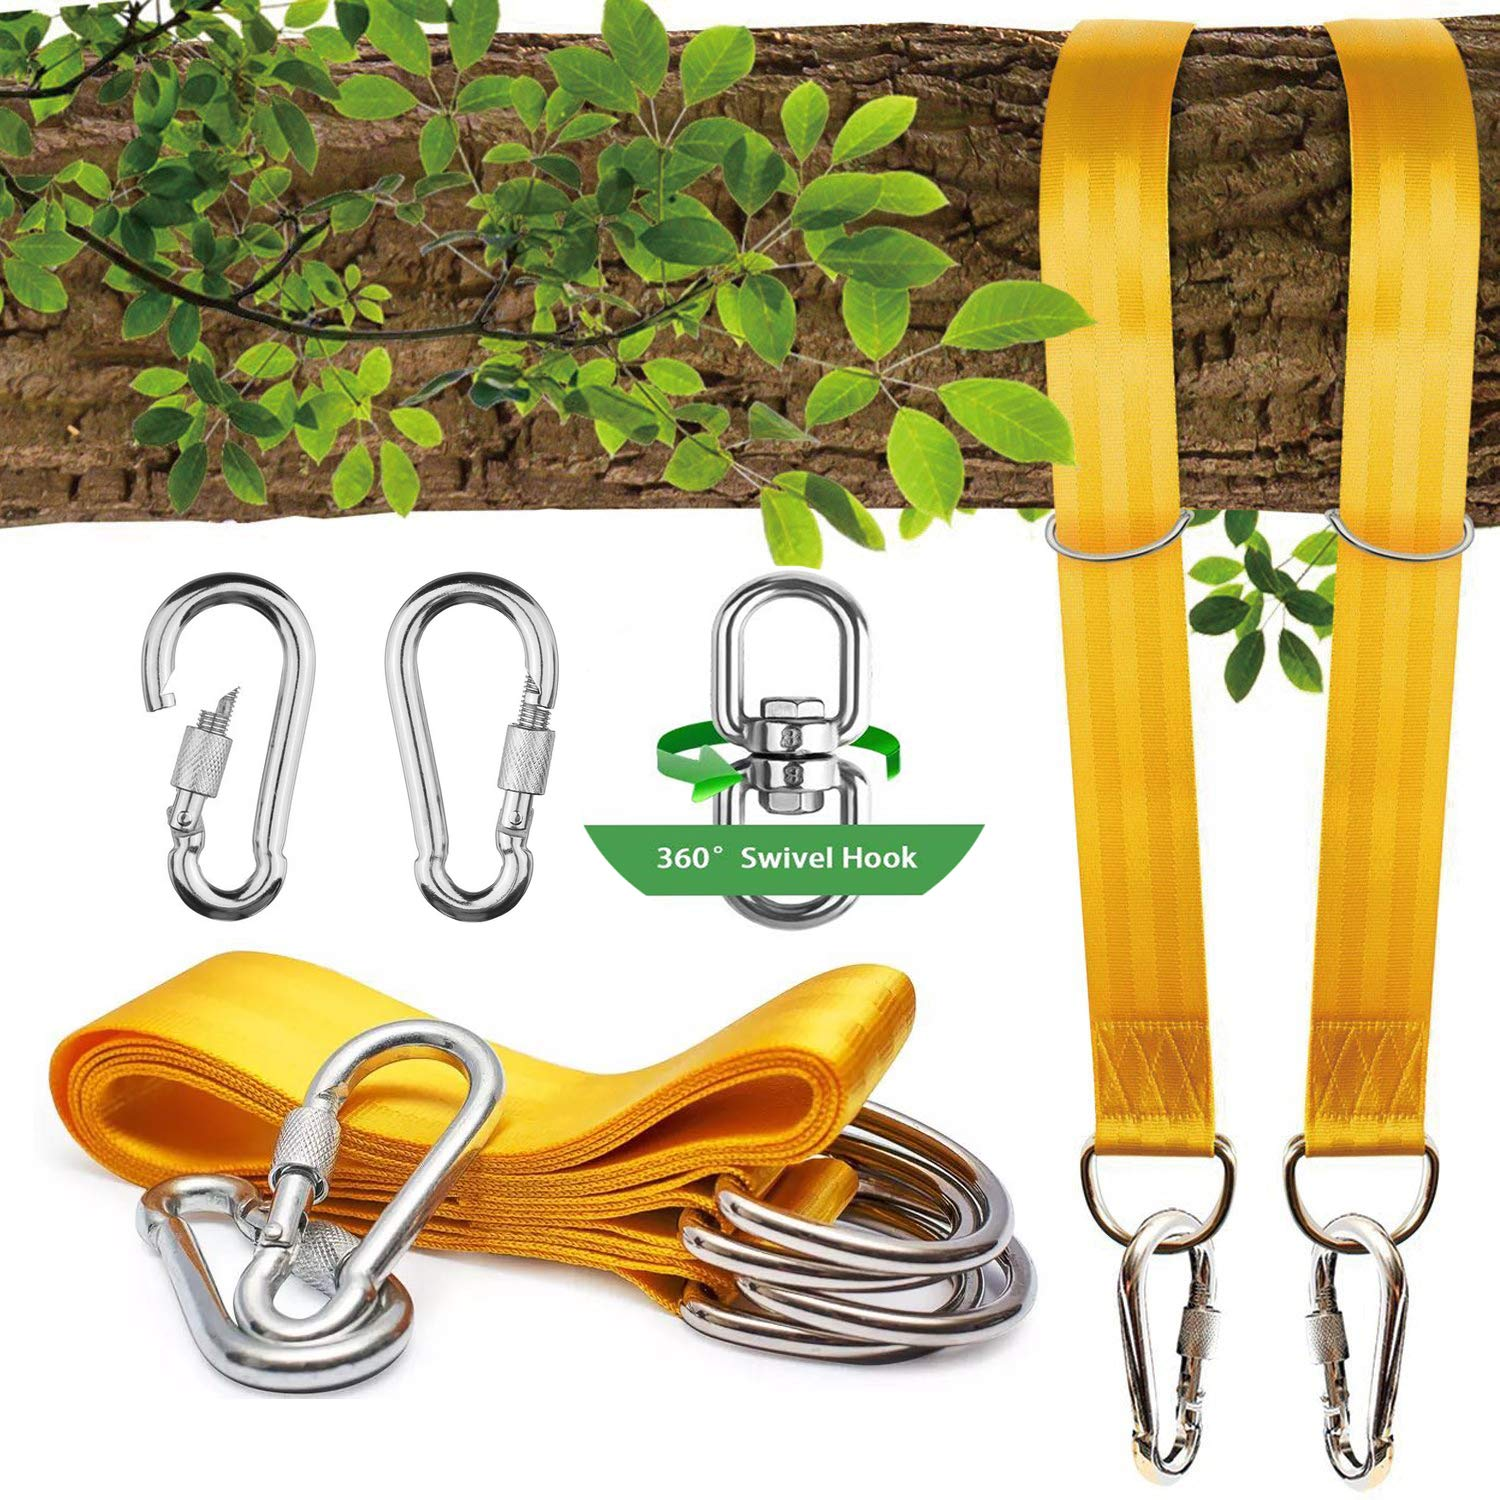 NEW~ Tree Swing Straps(5FT),2 Sets Heavy Duty Straps with Carabiners +Swivel/Spinner-Holds 2200lbs-Swing & Hammock ropes and hangers to hang Tire,Saucer,Web Swing/Toddler swing-SAFE &EASY Hanging Kit